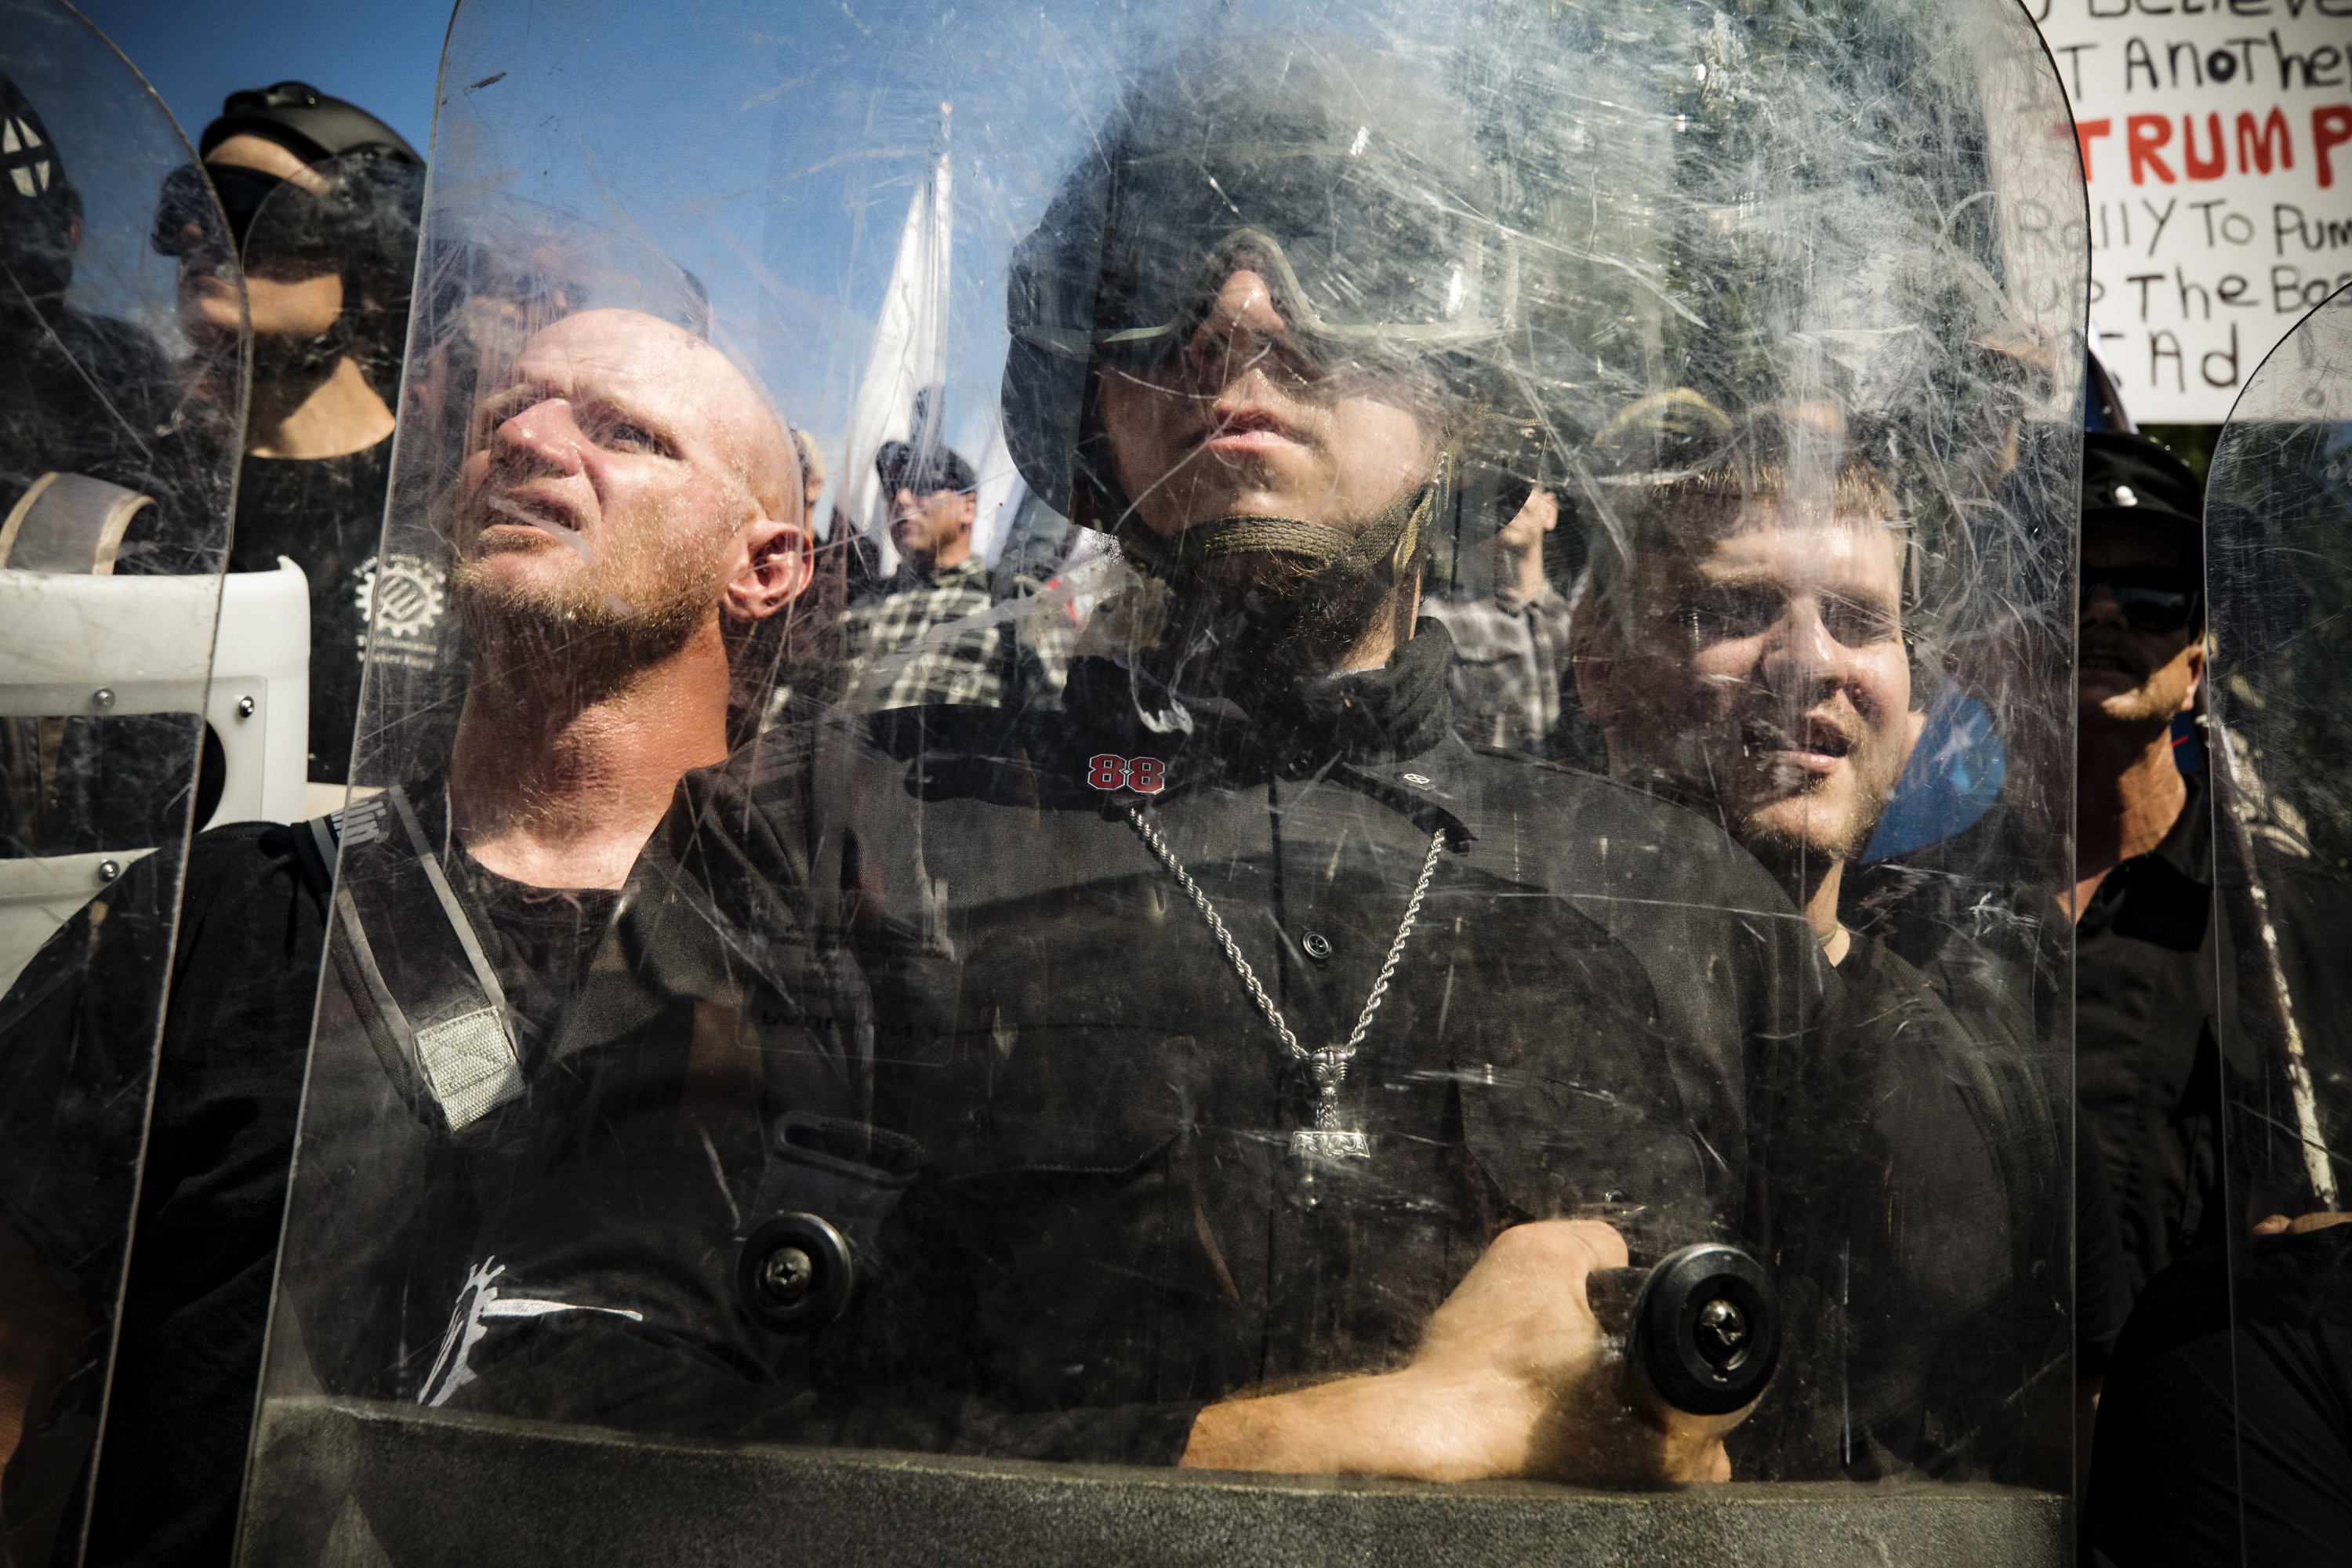 """White supremacists behind shields during the """"Unite the Right"""" rally in Charlottesville, Virginia, on August 12, 2017."""